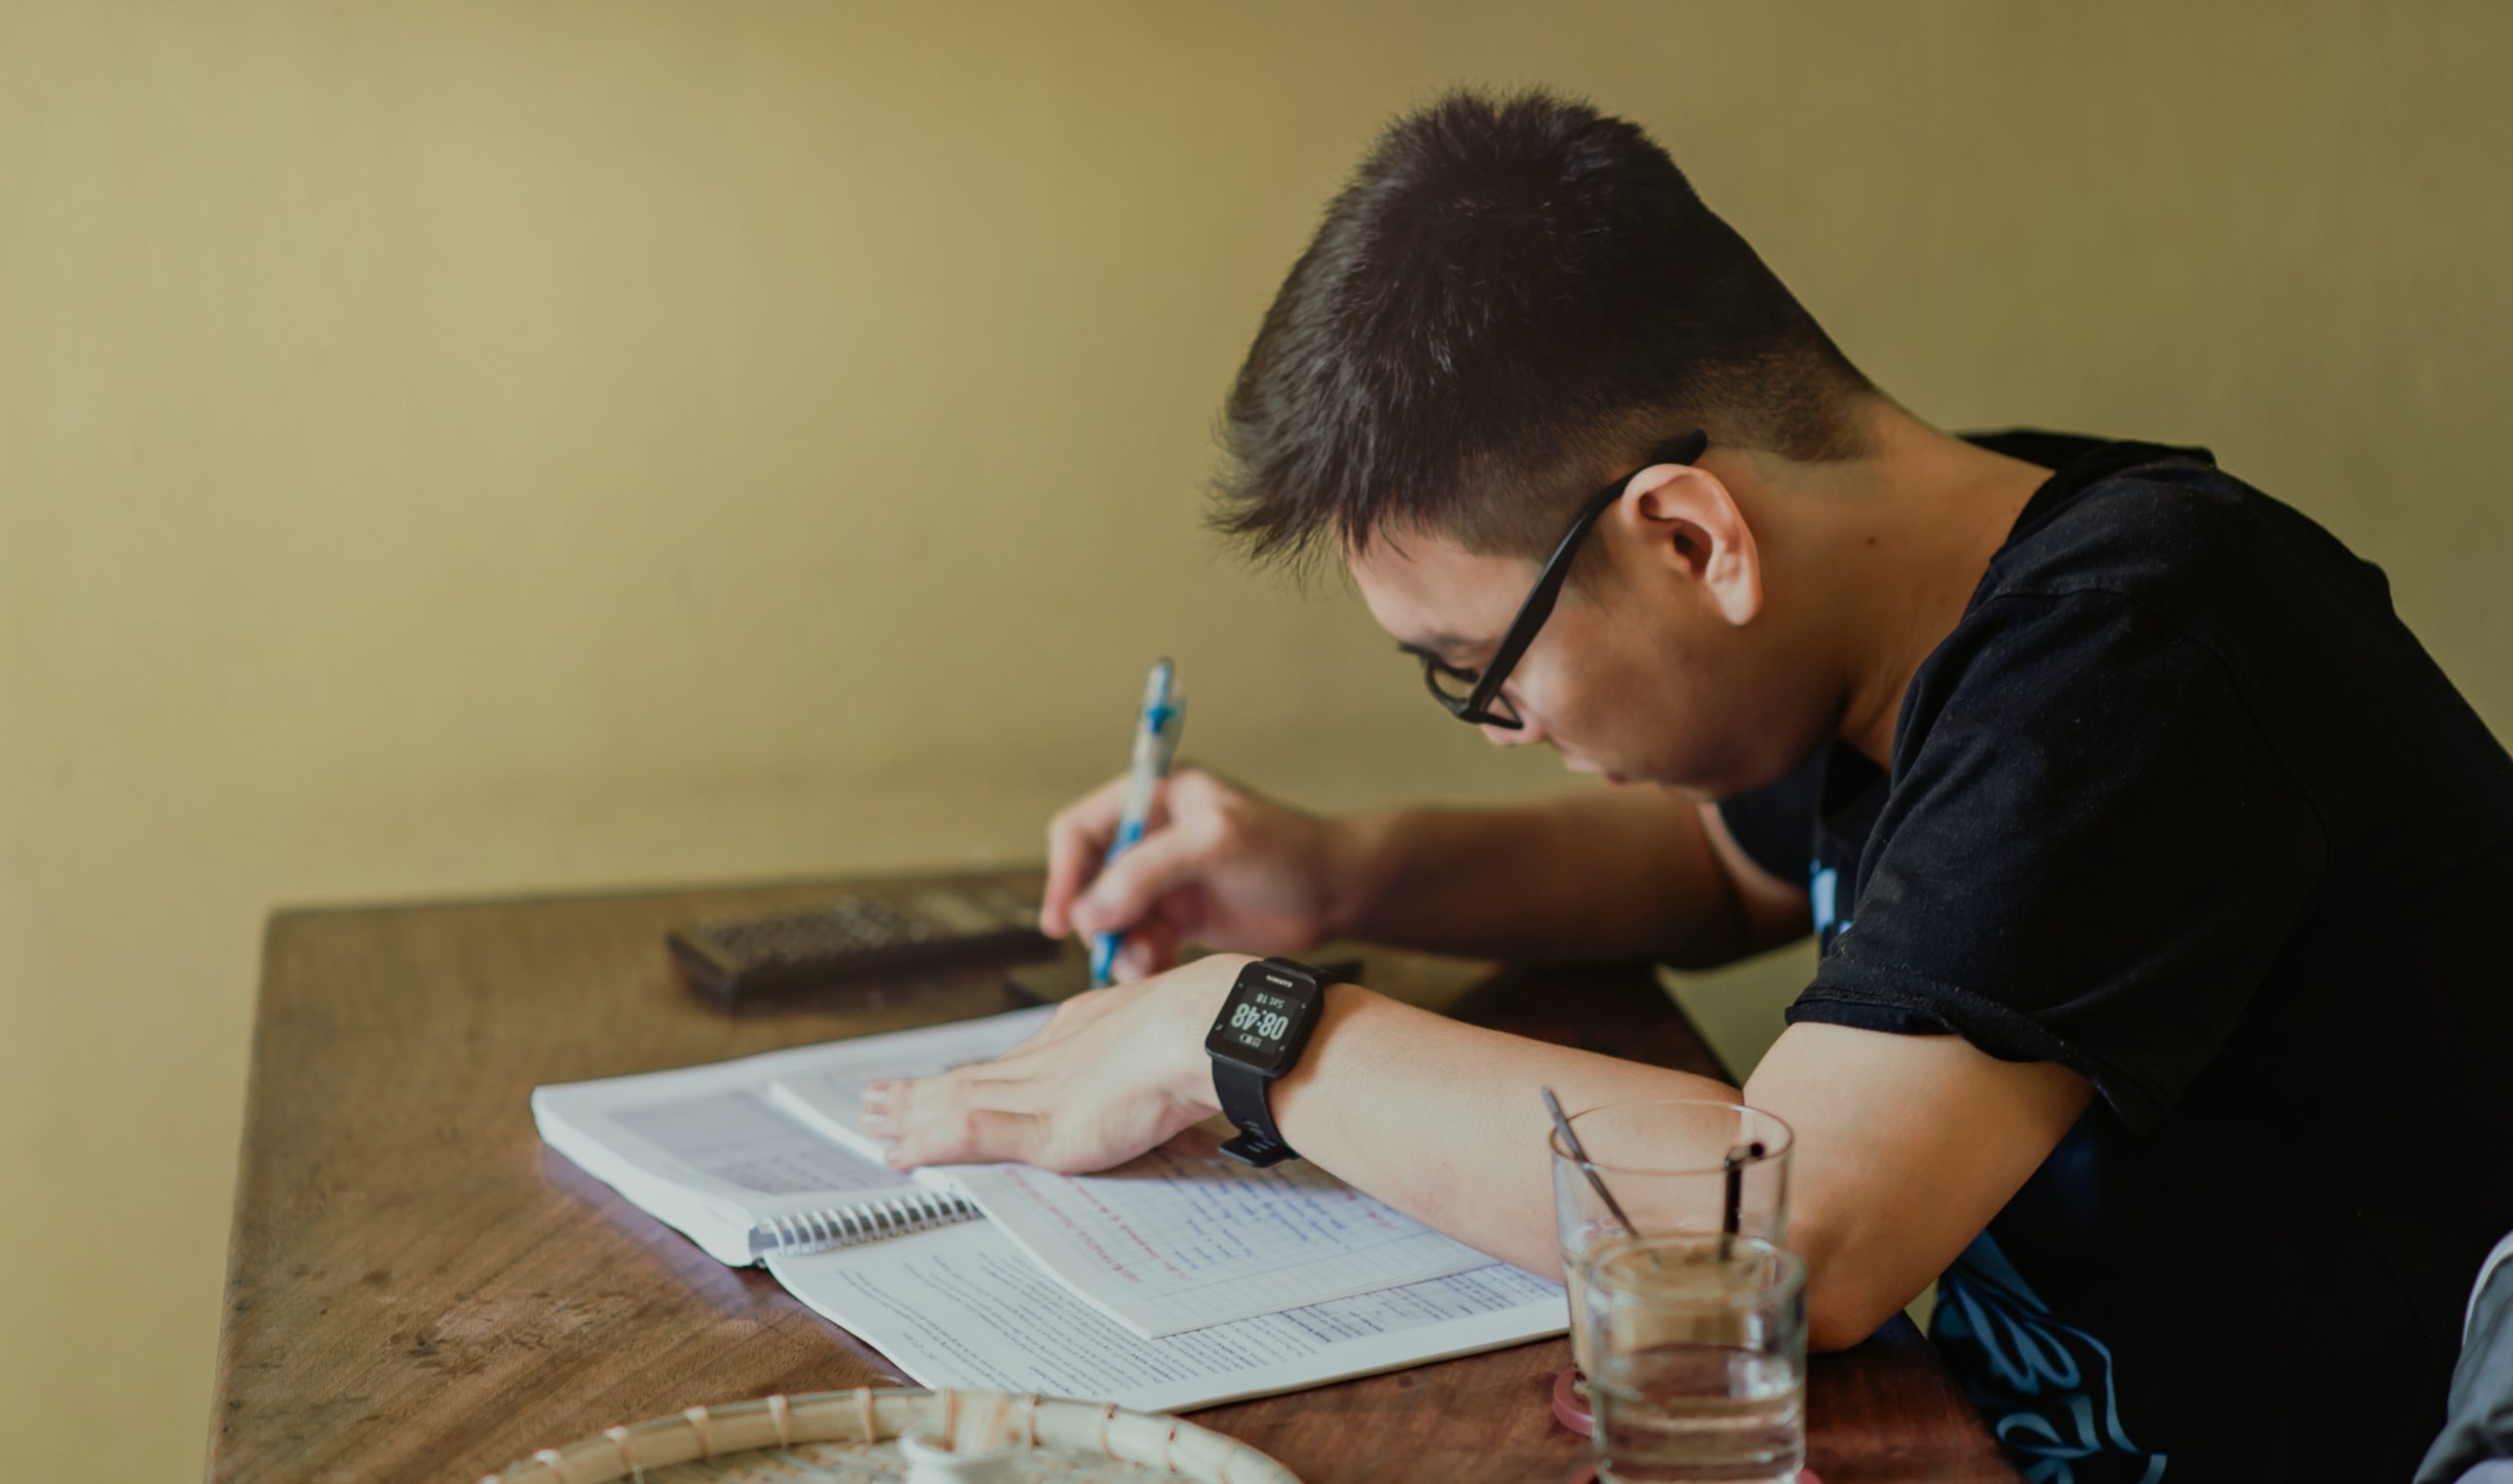 a-level student studying